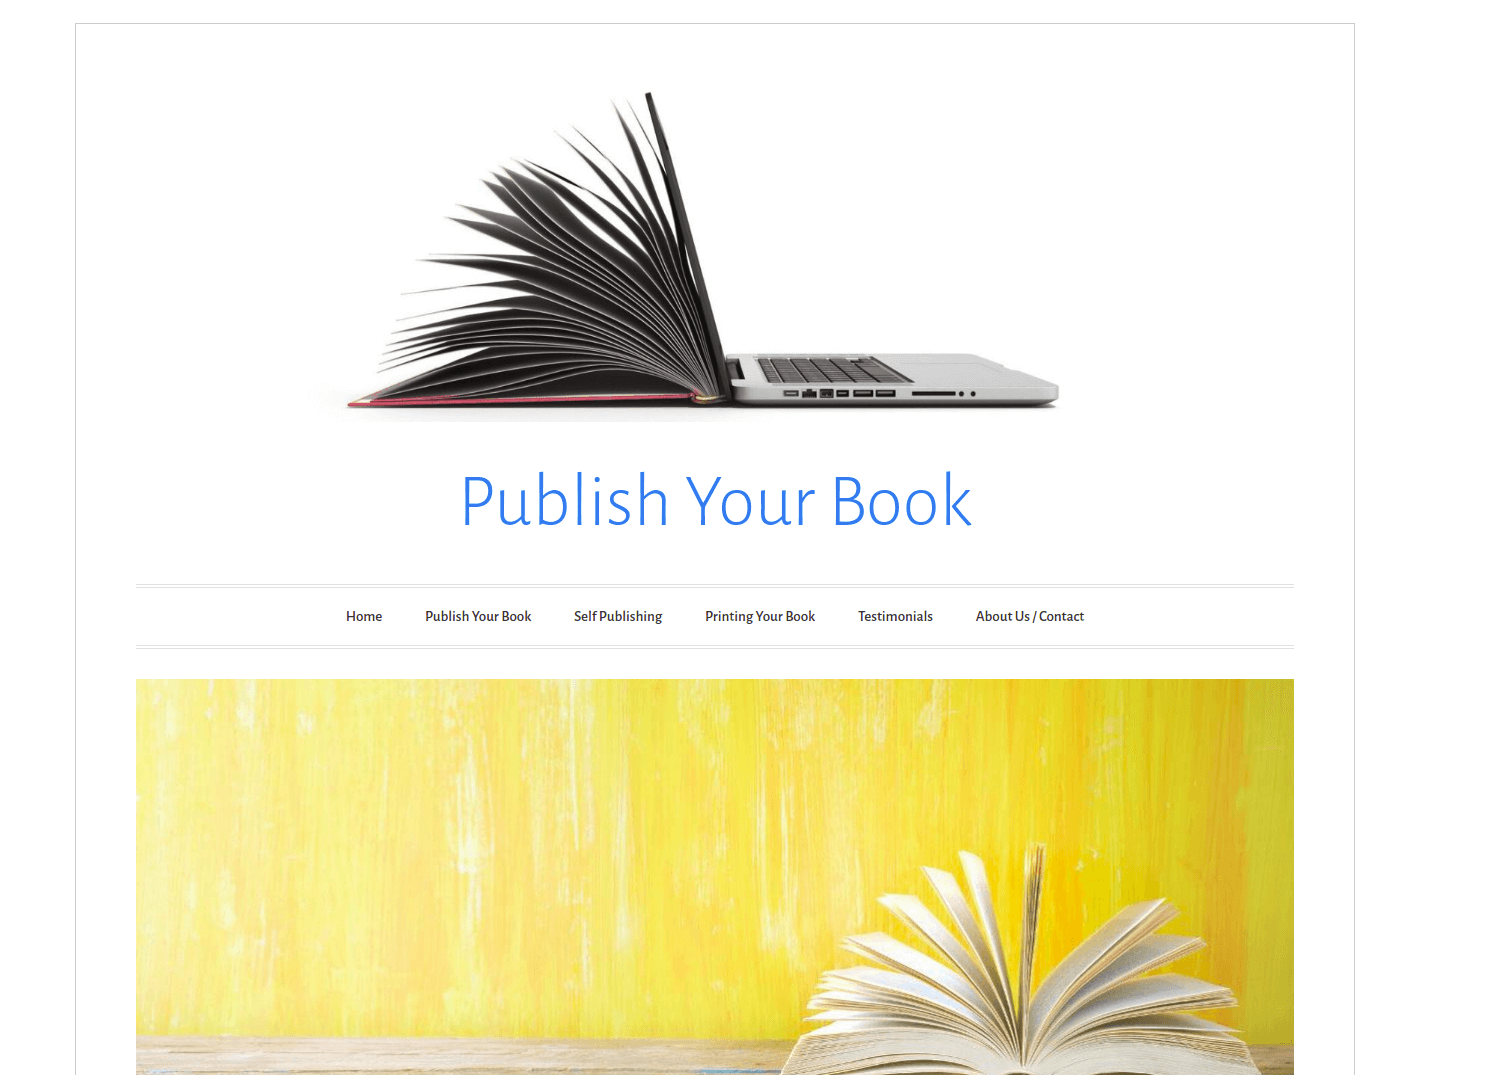 the website of publish your book